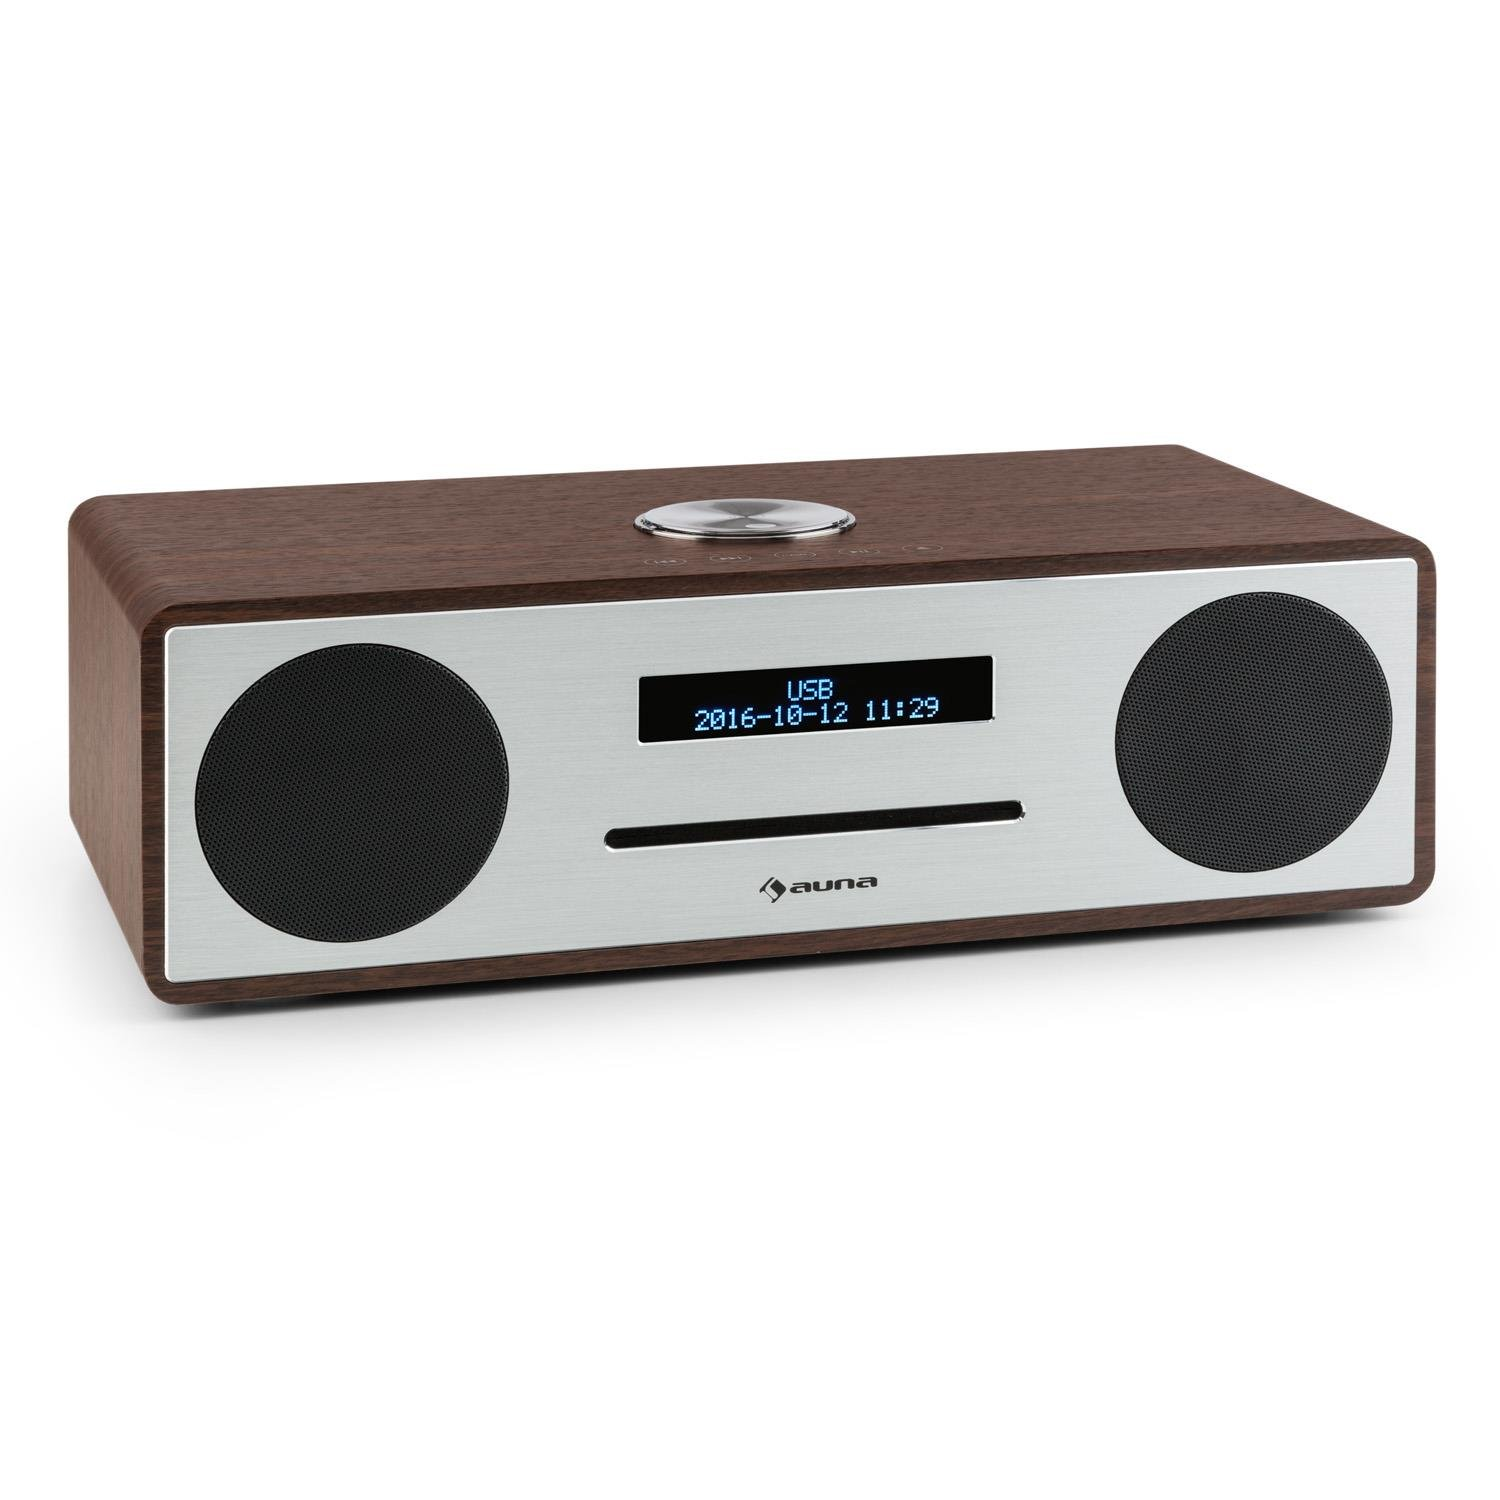 Chronos USB Radio Box Last